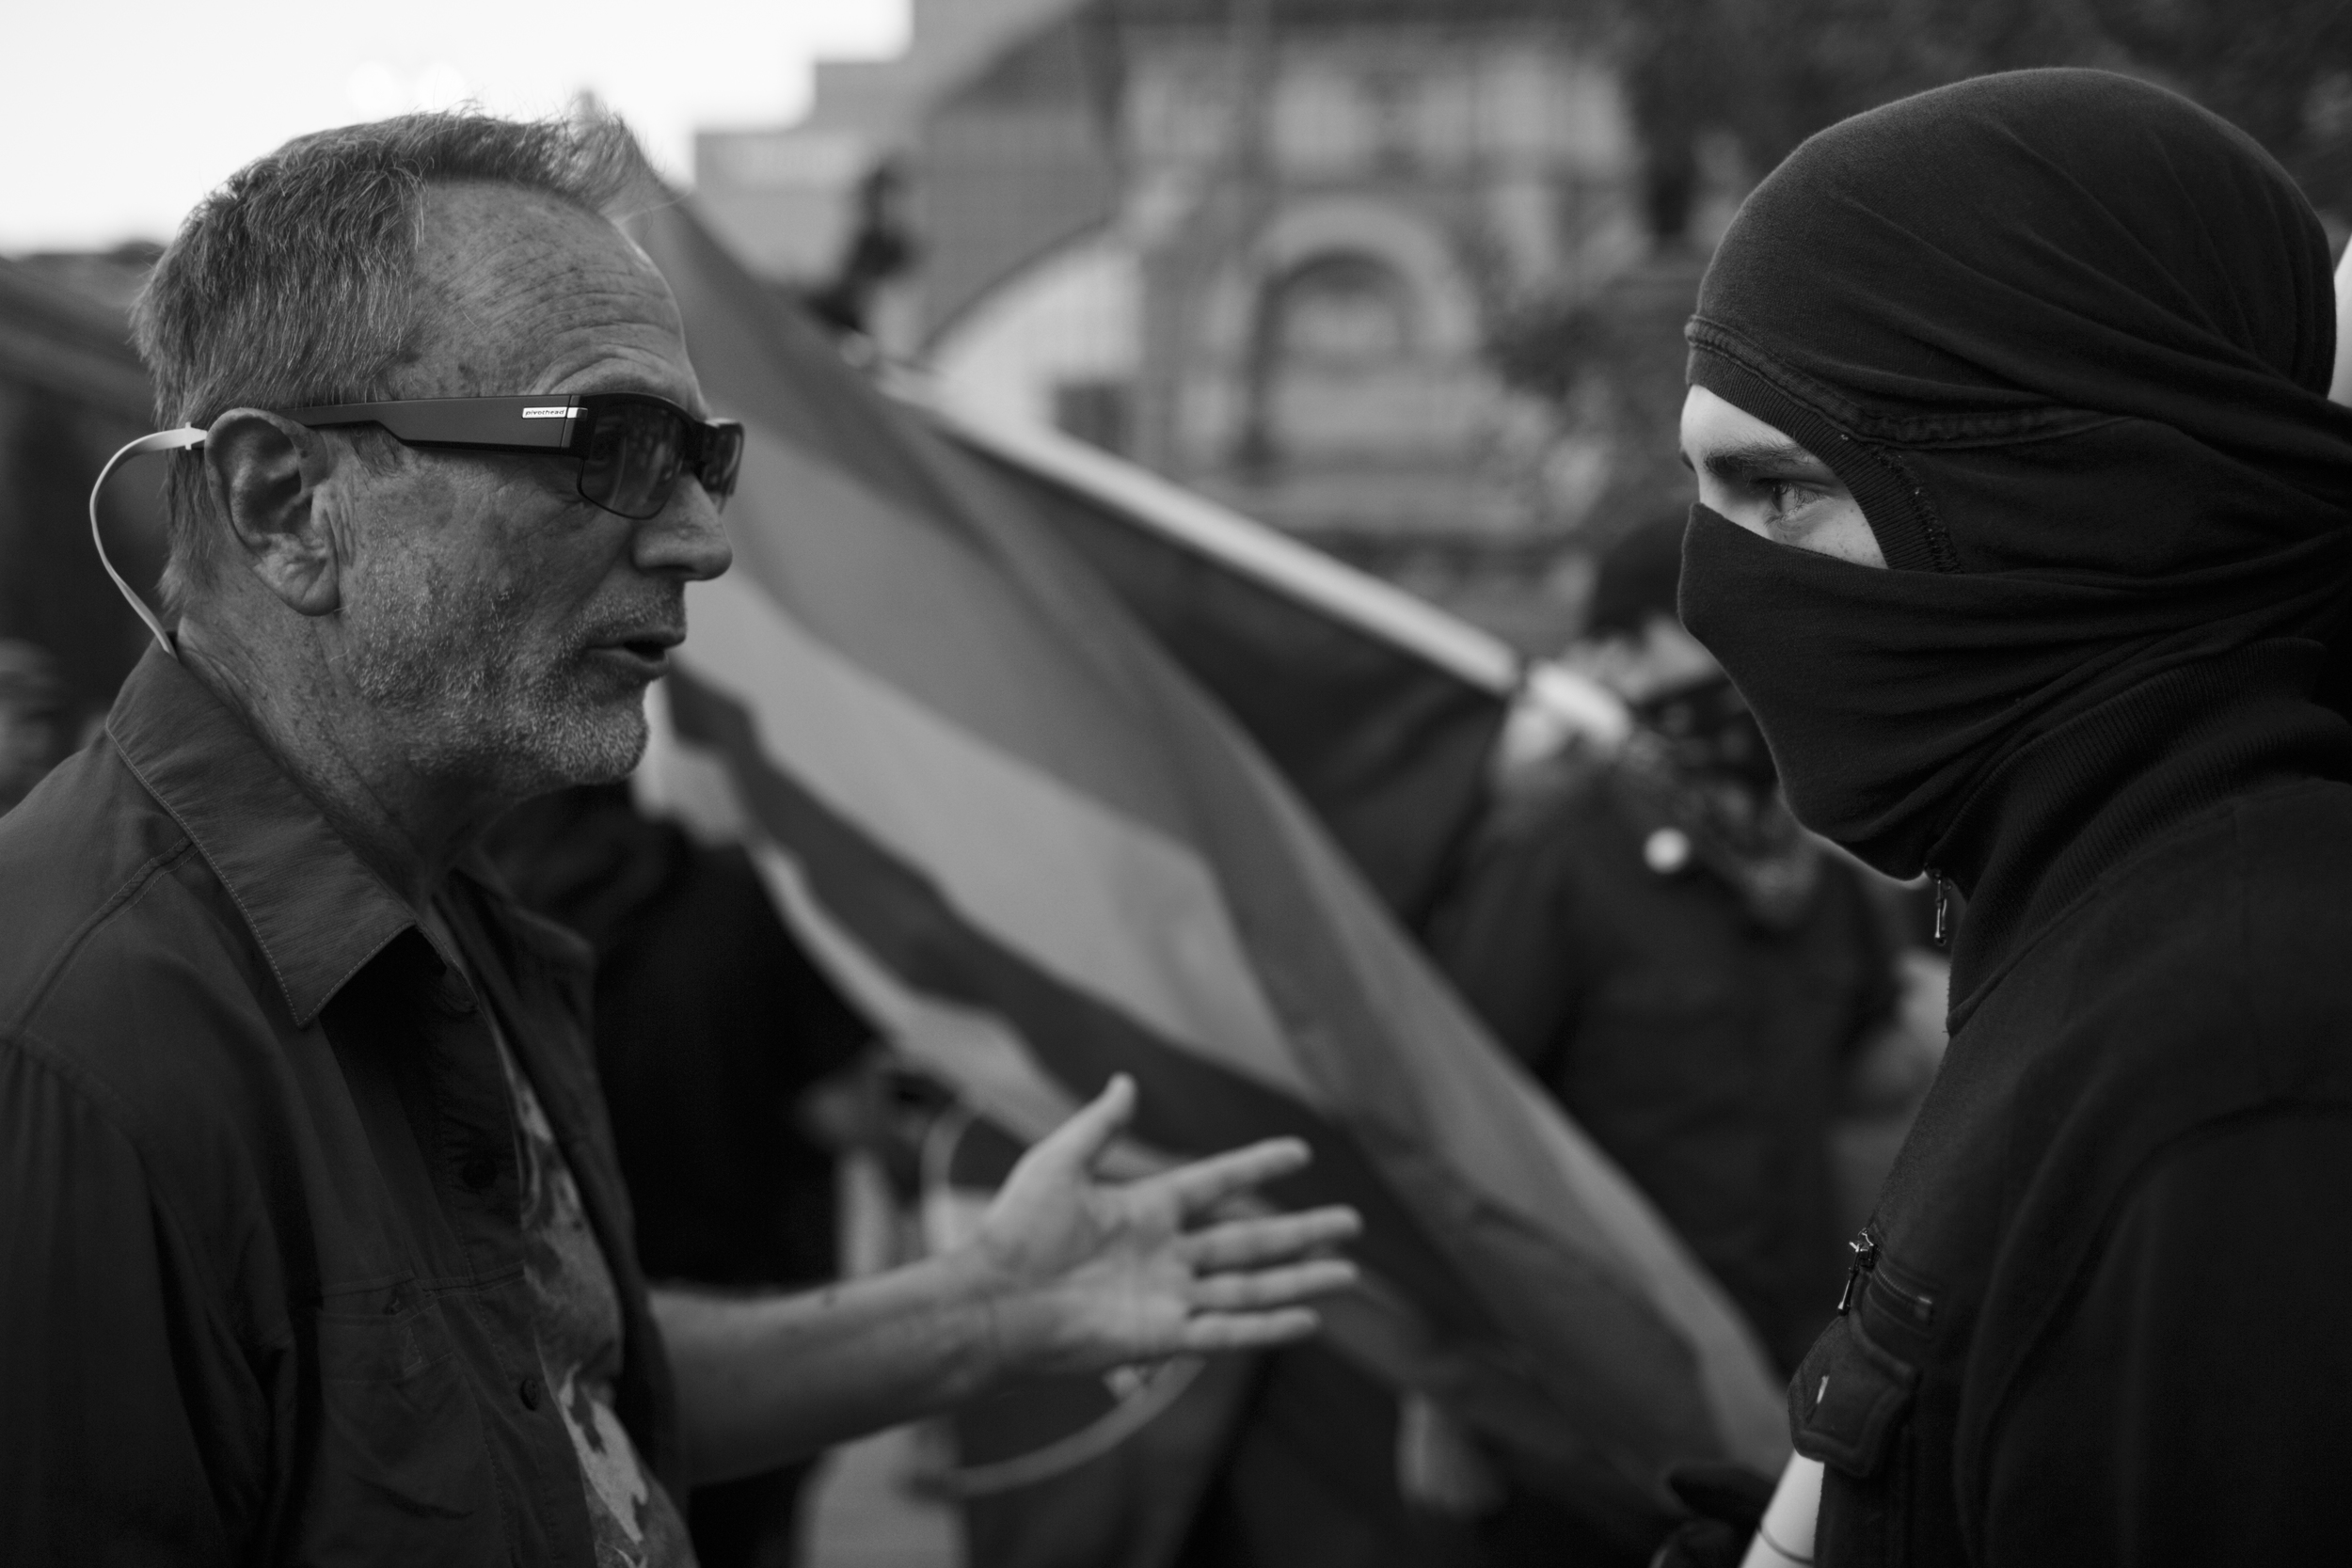 19 July 2016 - Cleveland, Ohio - Two people with opposing political views talking back and forth on Public Square. The 2nd day of the Republican National Convention was still peaceful and quiet and now major incidents between Trump supporters and Anti-Trump protestors happened.Photo: Cédric von Niederhäusern